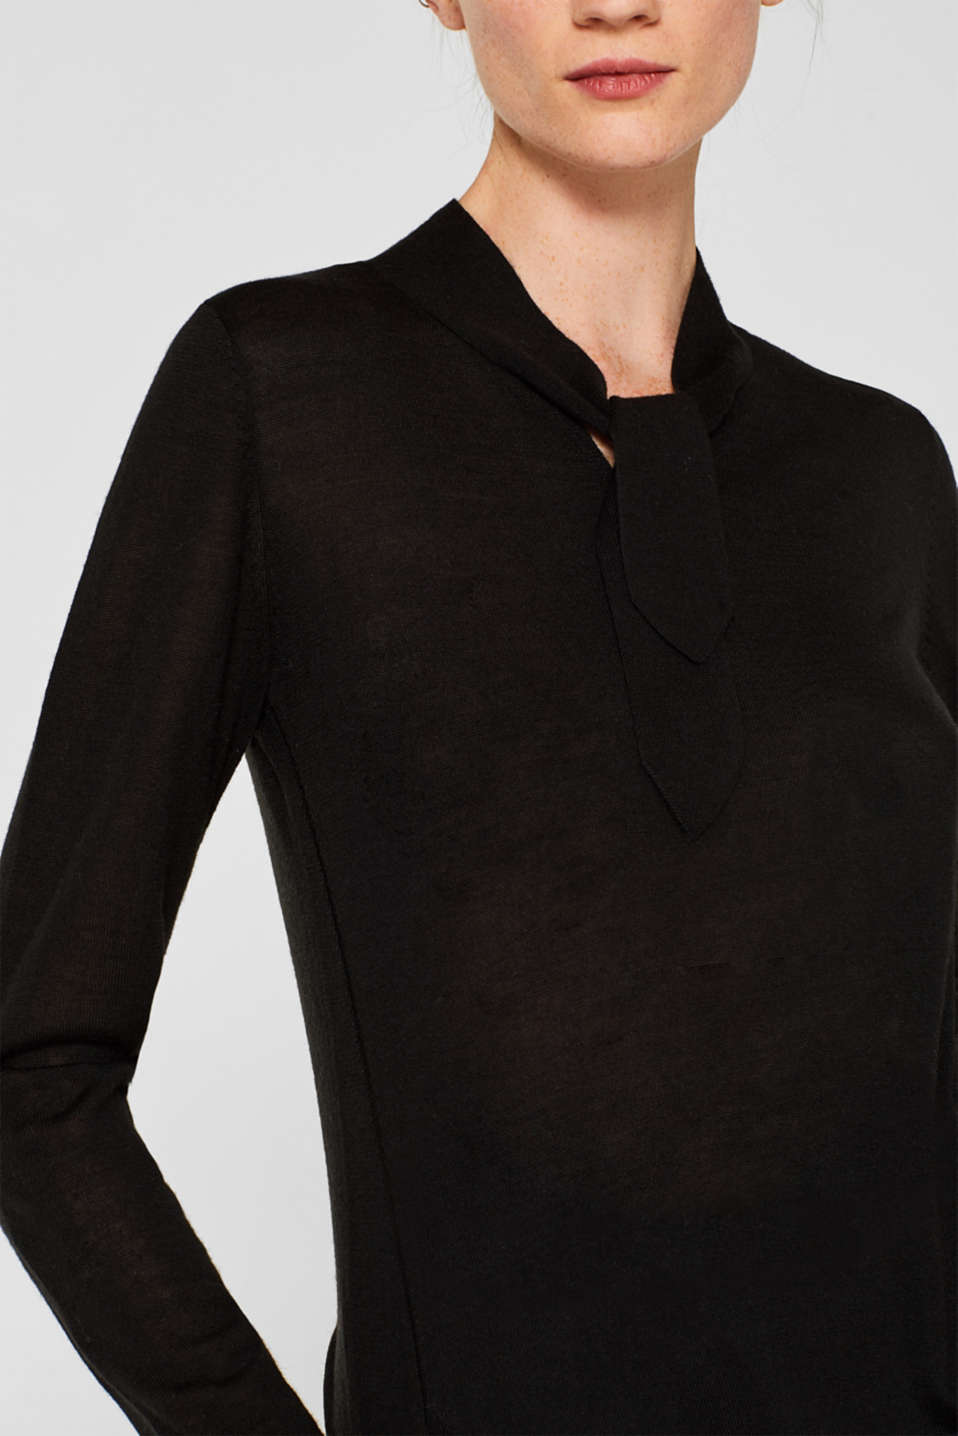 With merino wool: jumper with a pussycat bow